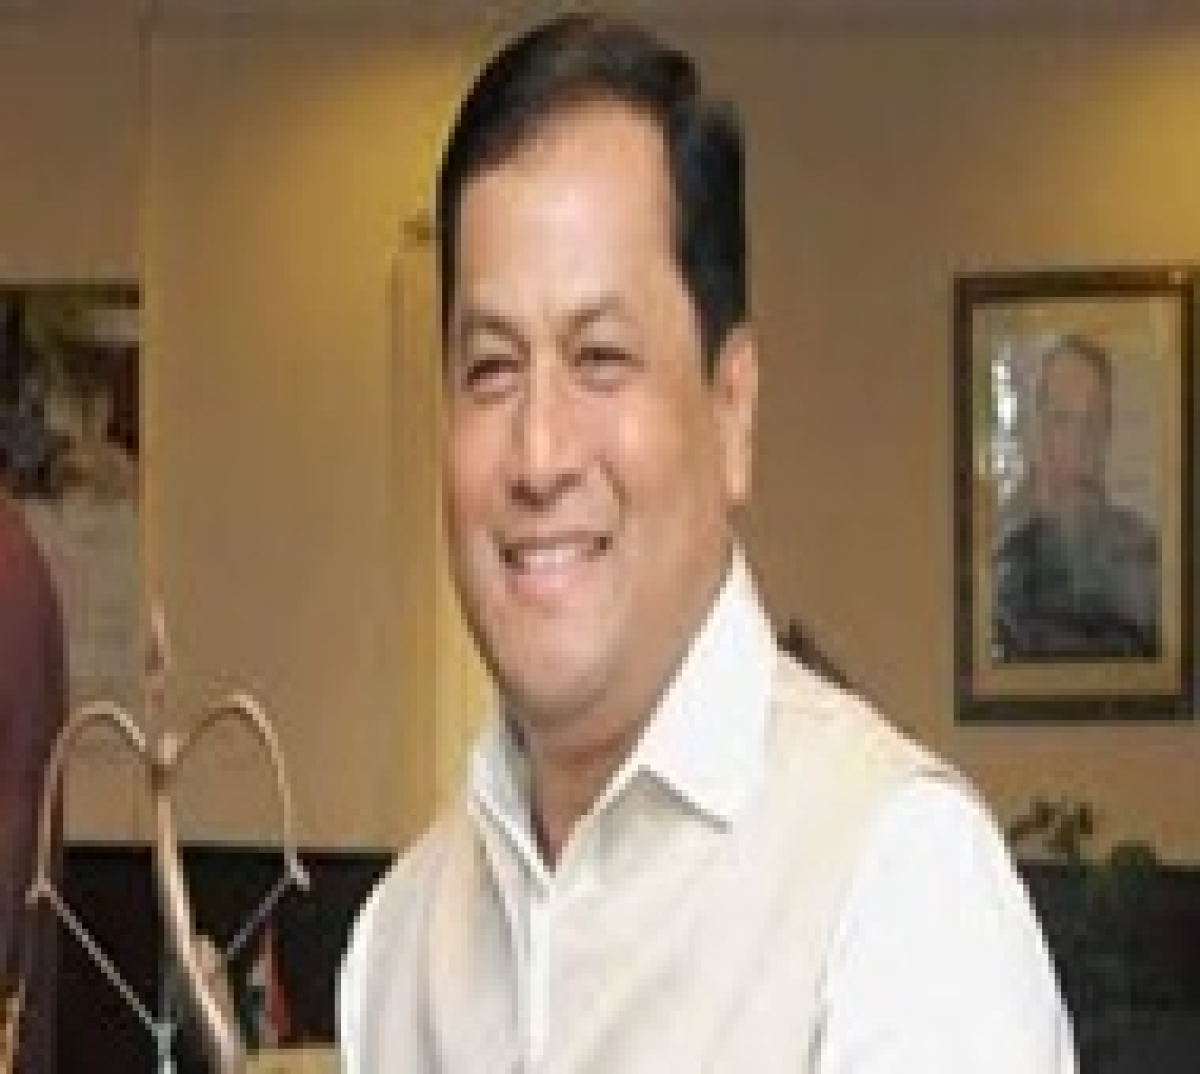 BJP CM candidate Sonowal, 41 other contestants file nomination papers